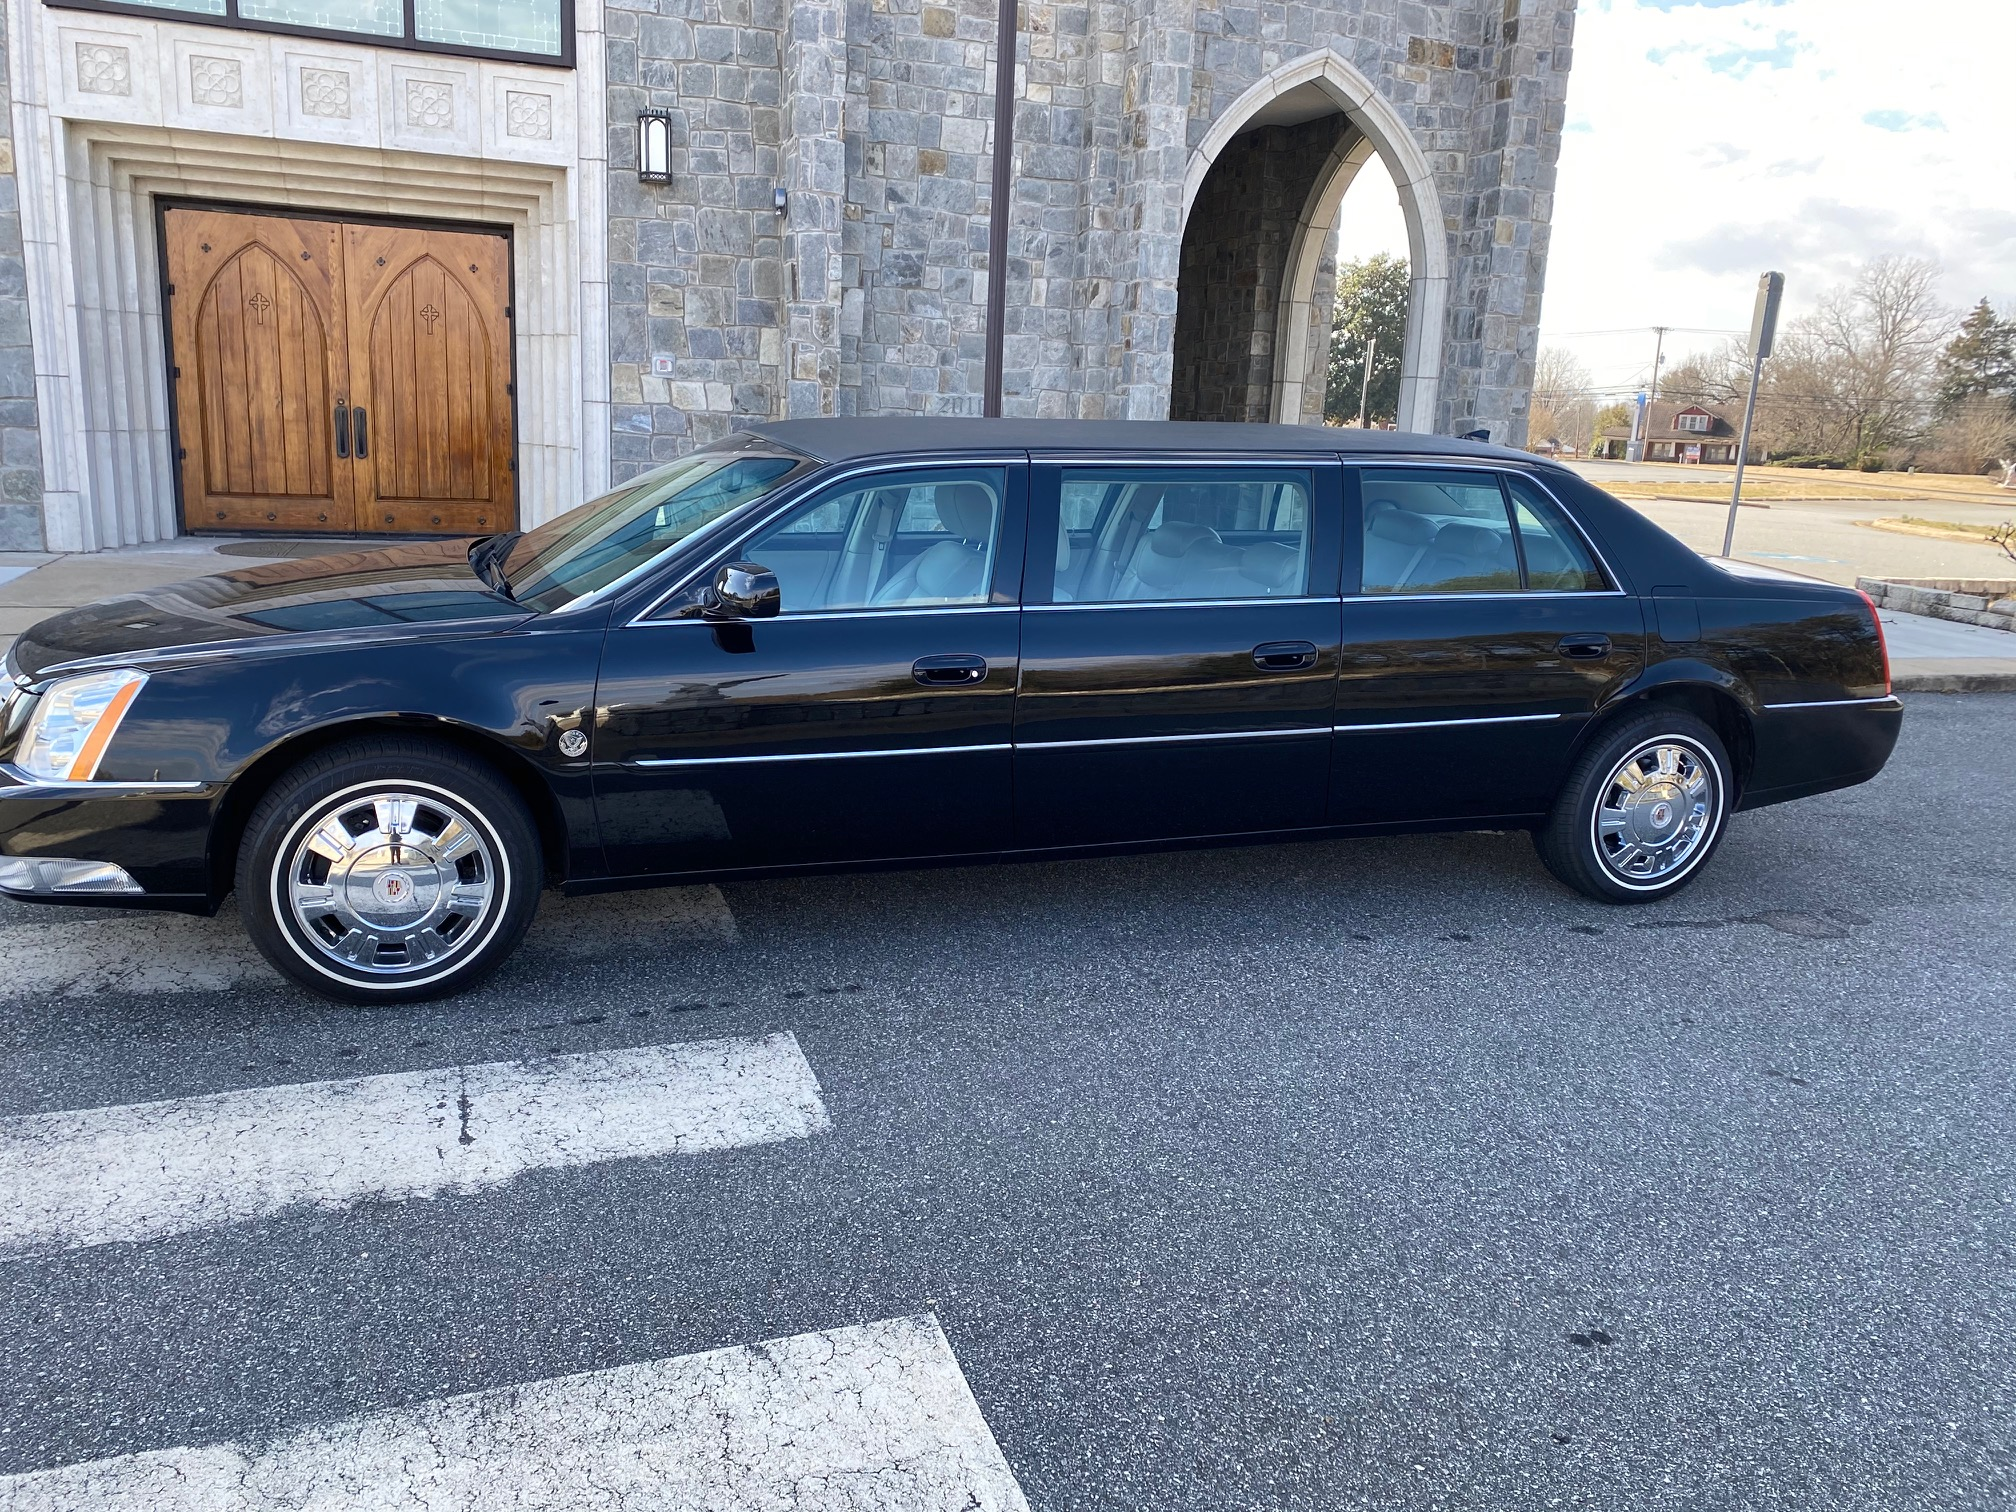 2010 Cadillac Federal Six Door Limousine with Shale Interior Used Limo For Sale